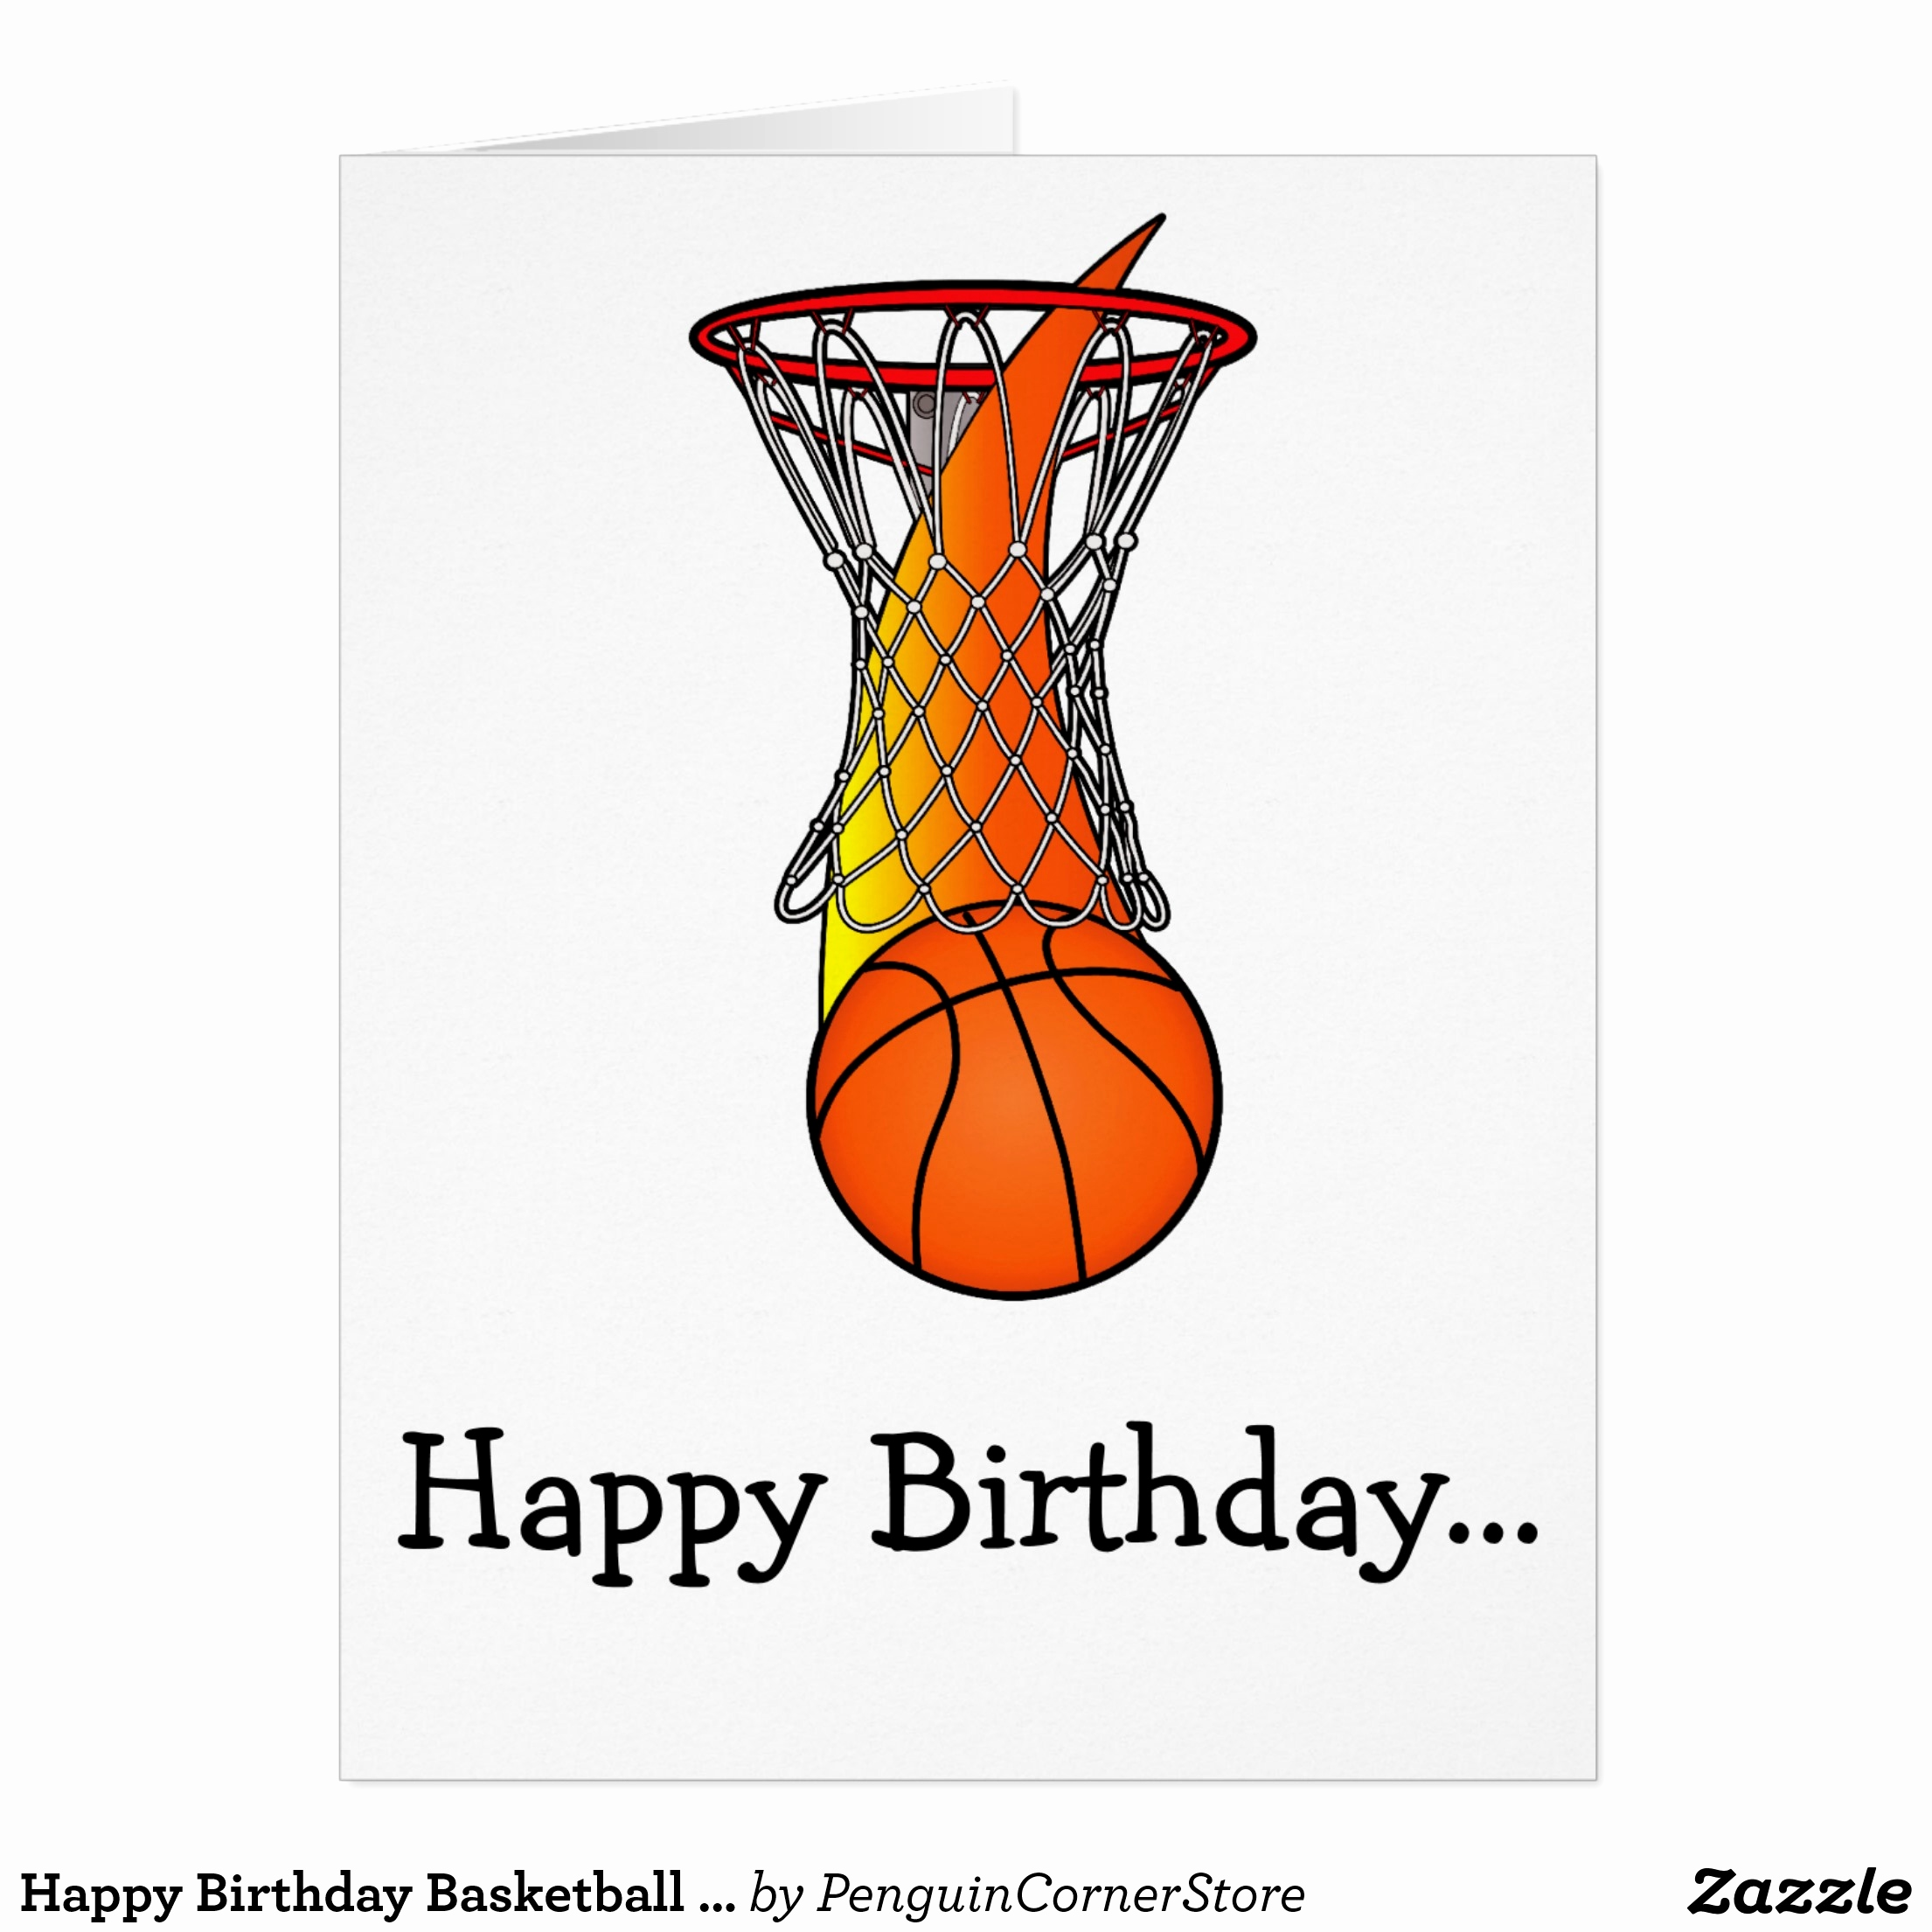 basketball birthday card templates ; basketball-birthday-card-templates-new-happy-birthday-basketball-from-the-whole-gang-card-of-basketball-birthday-card-templates